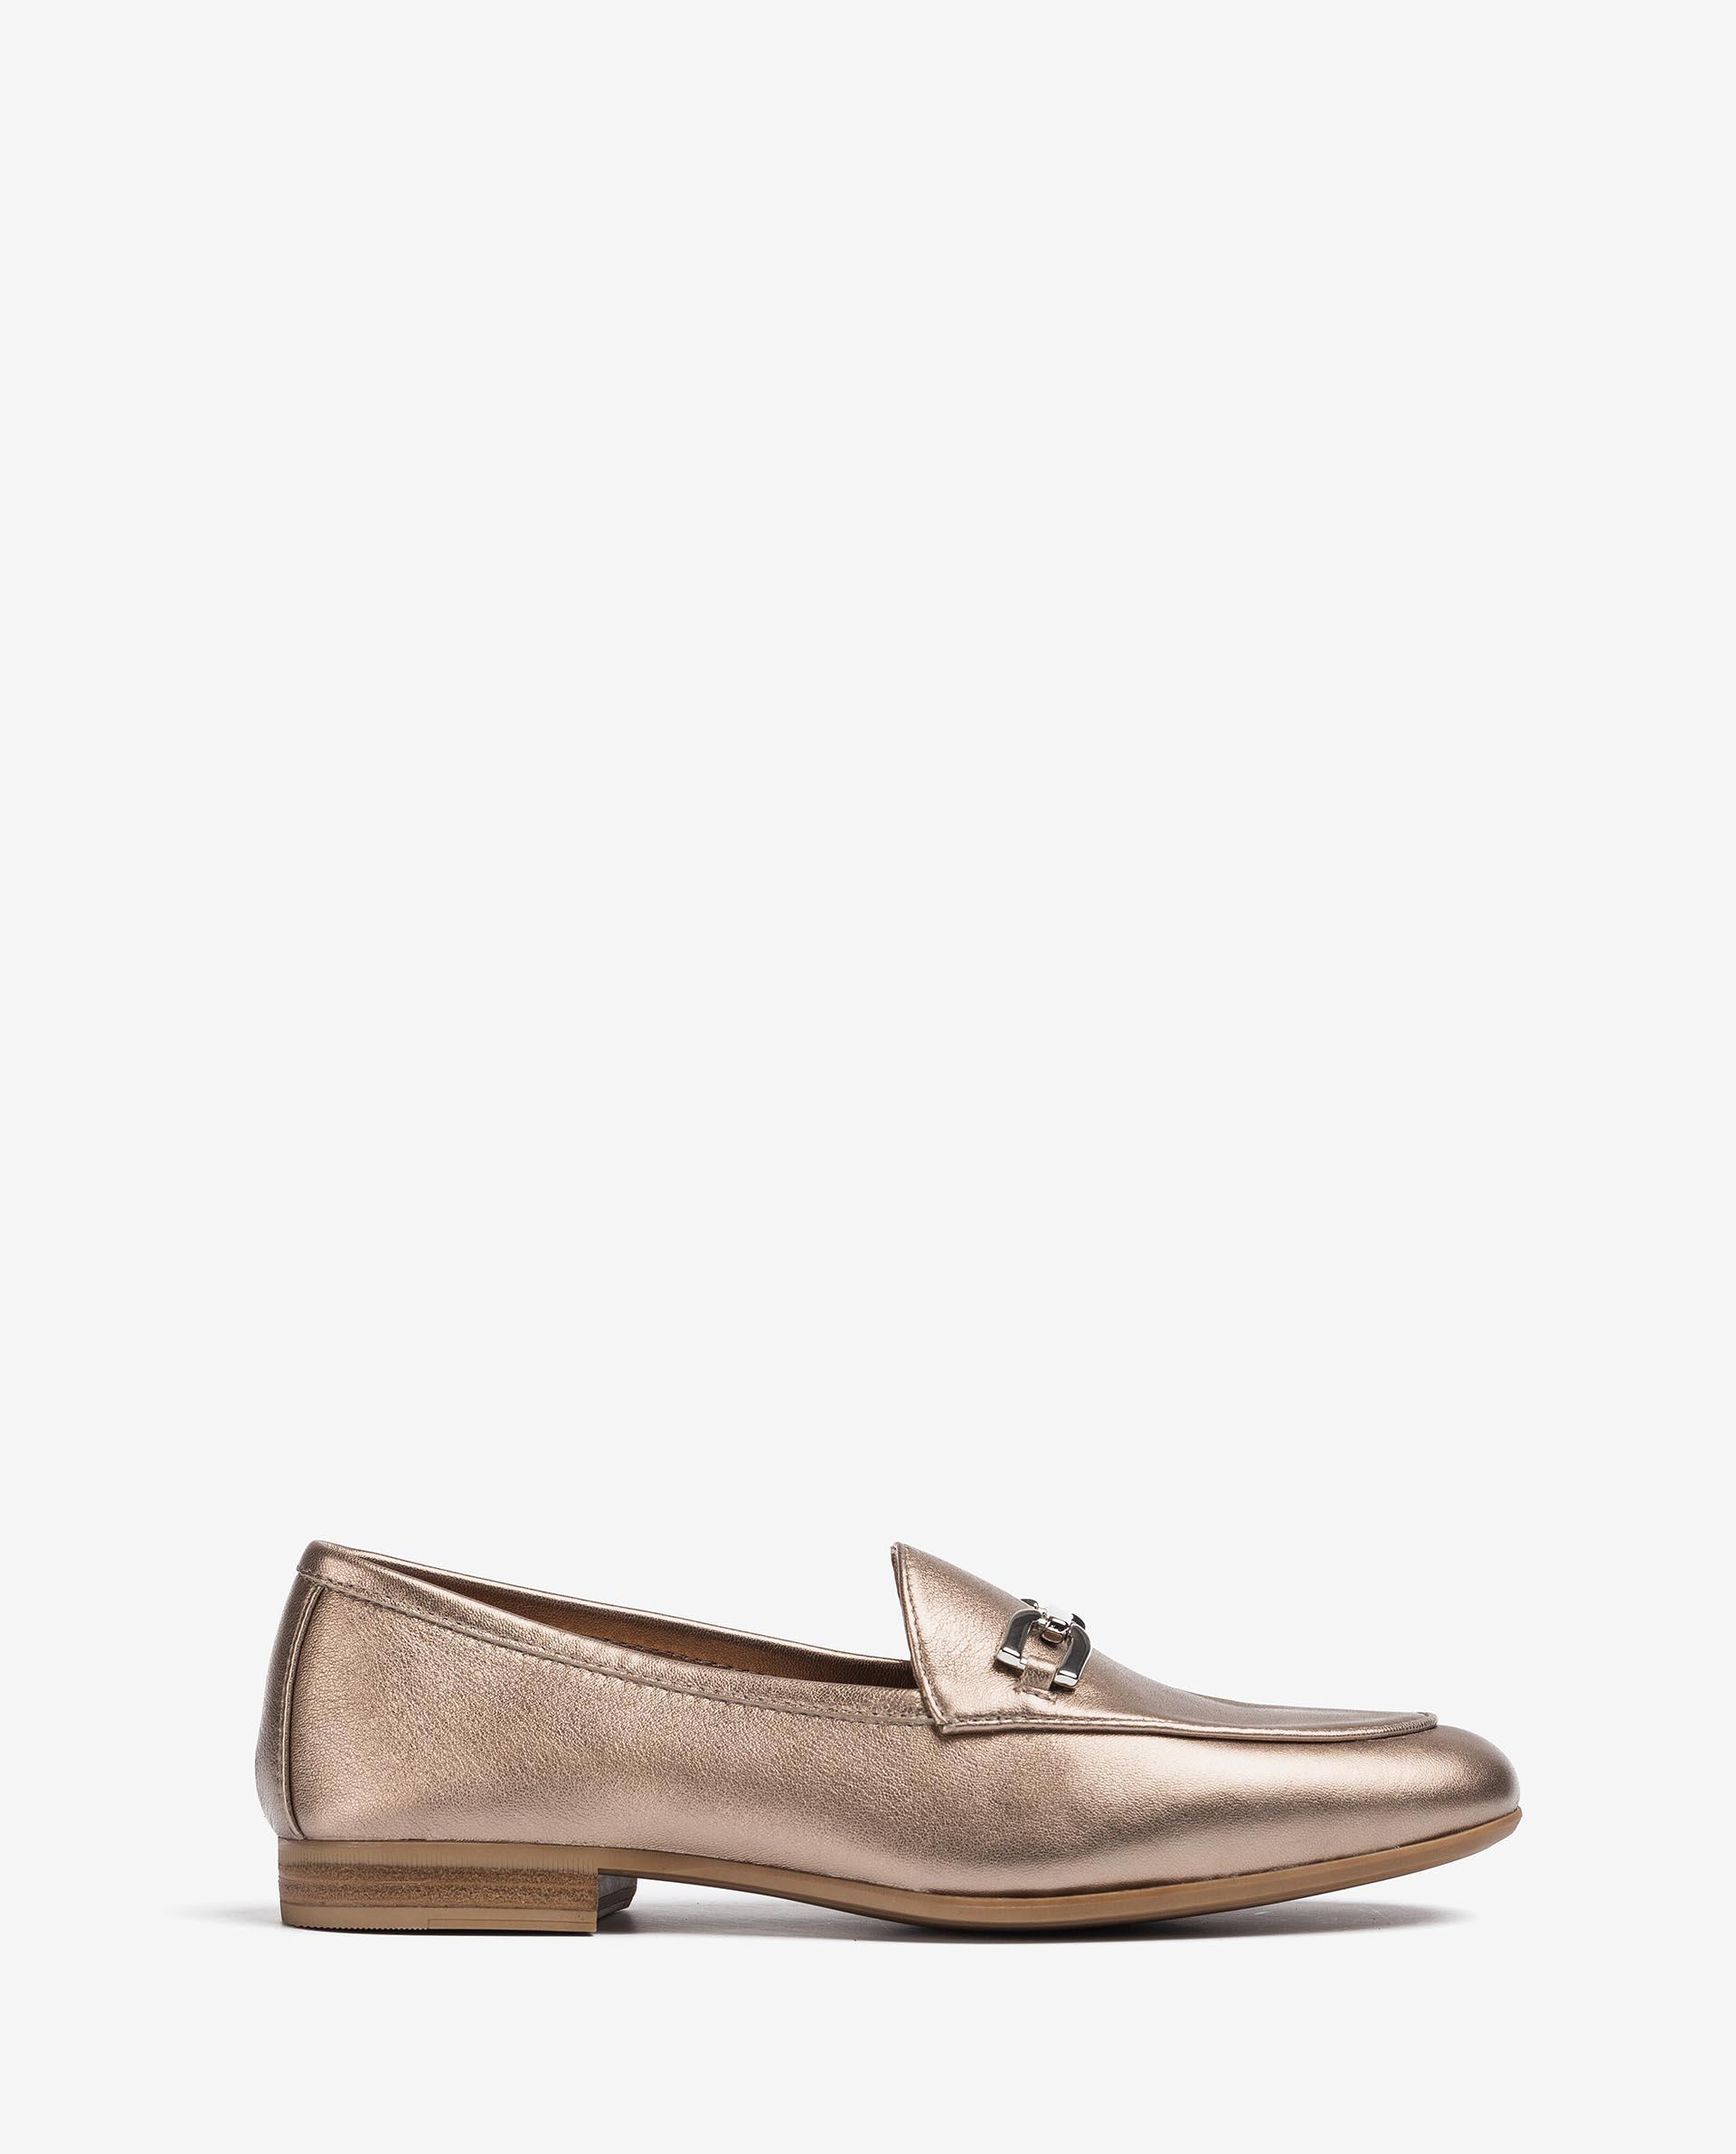 UNISA Metal effect leather loafers DALCY_21_LMT 2